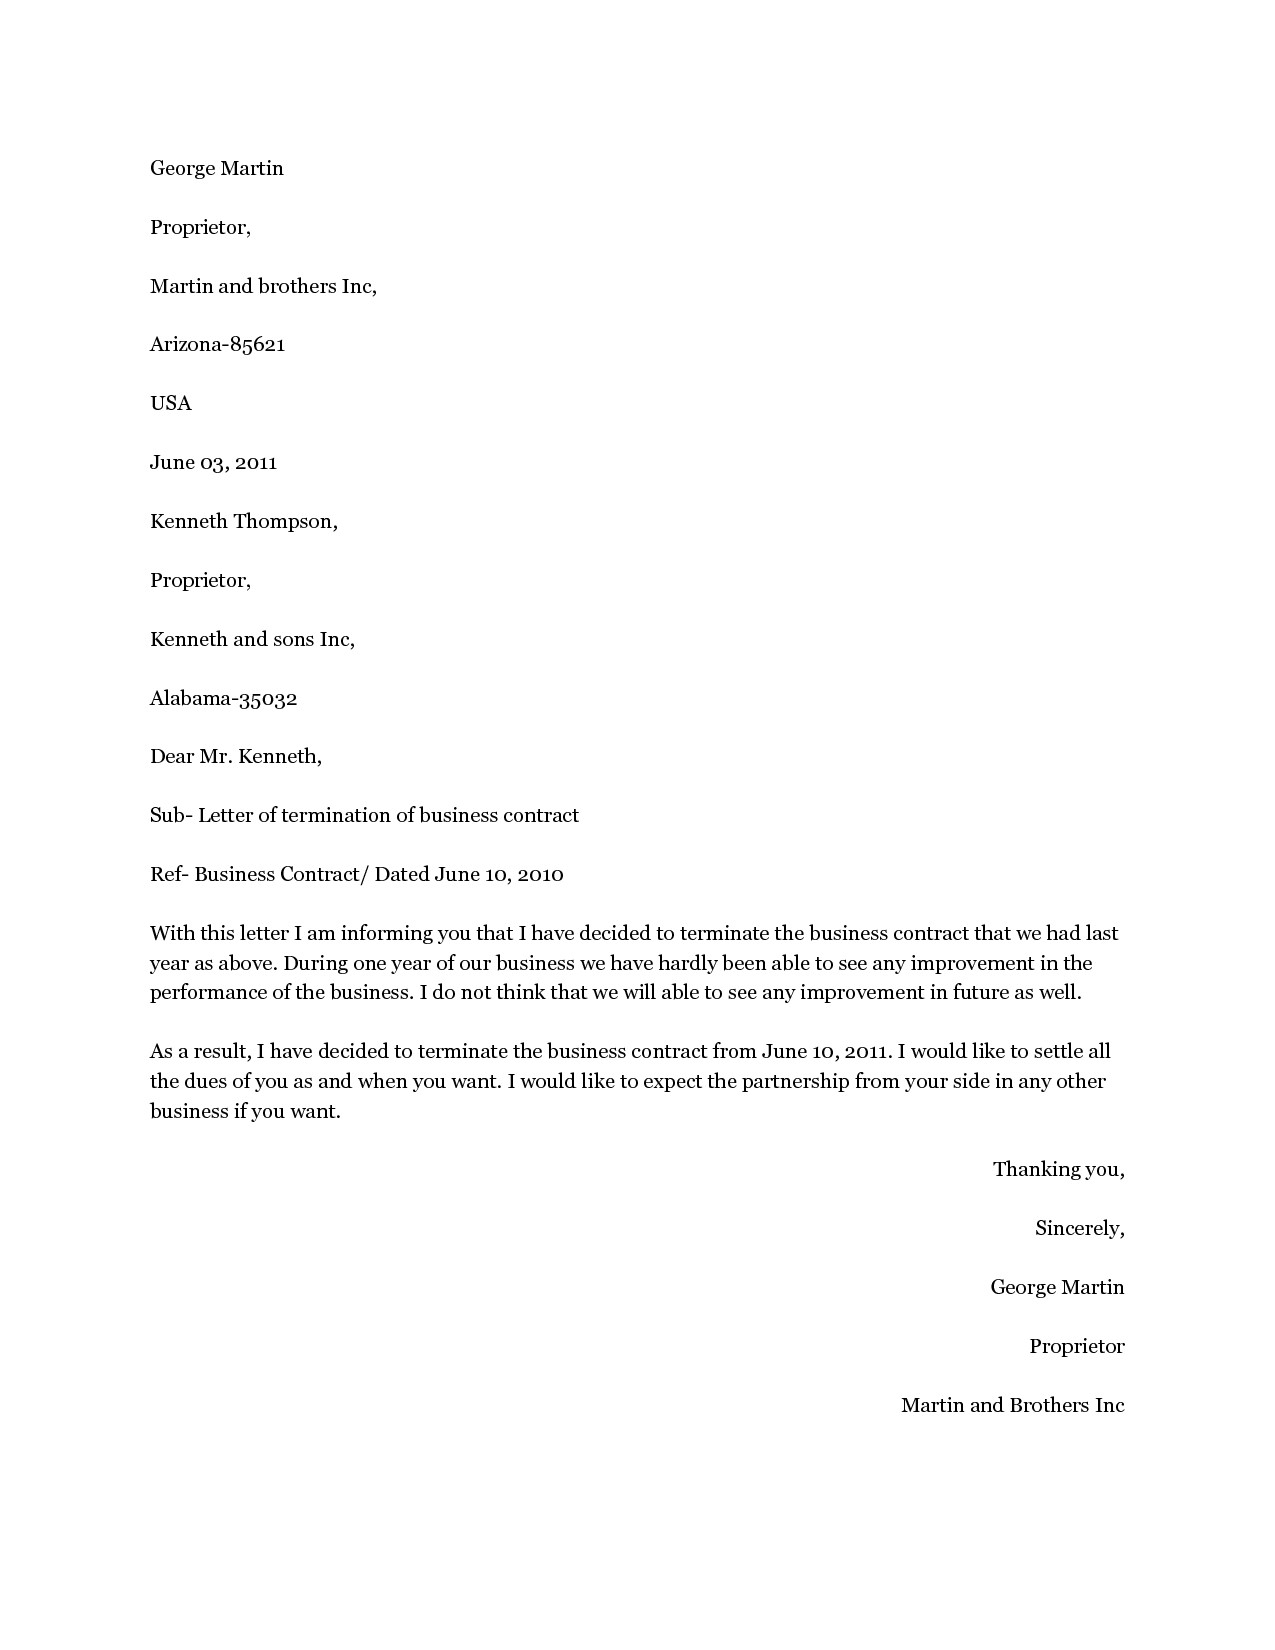 Cancel Service Contract Letter Template - Cancellation Contract Elegant Refund Agreement Sample Image